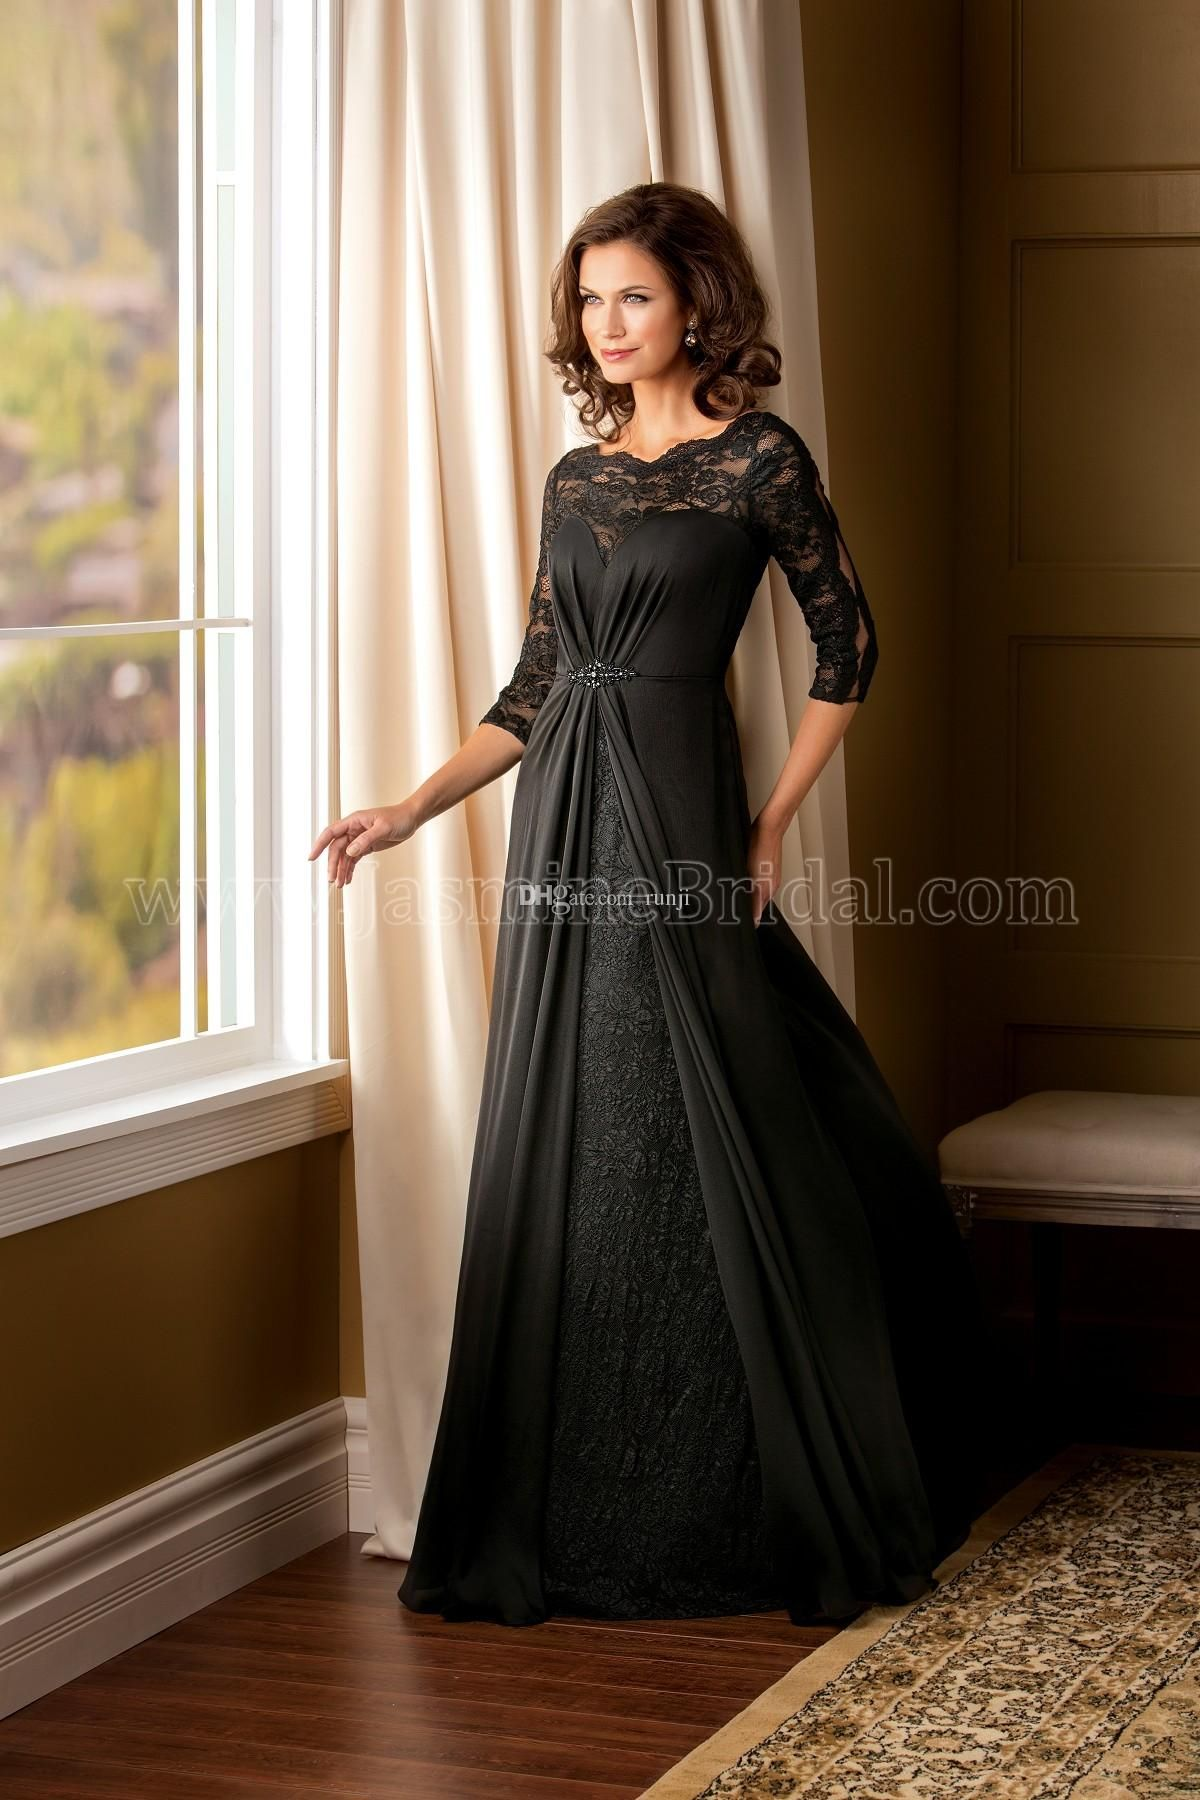 Black long sleeve wedding dresses  Wholesale Sexy Bateau Lace Bride Mother Dresses  Fashion